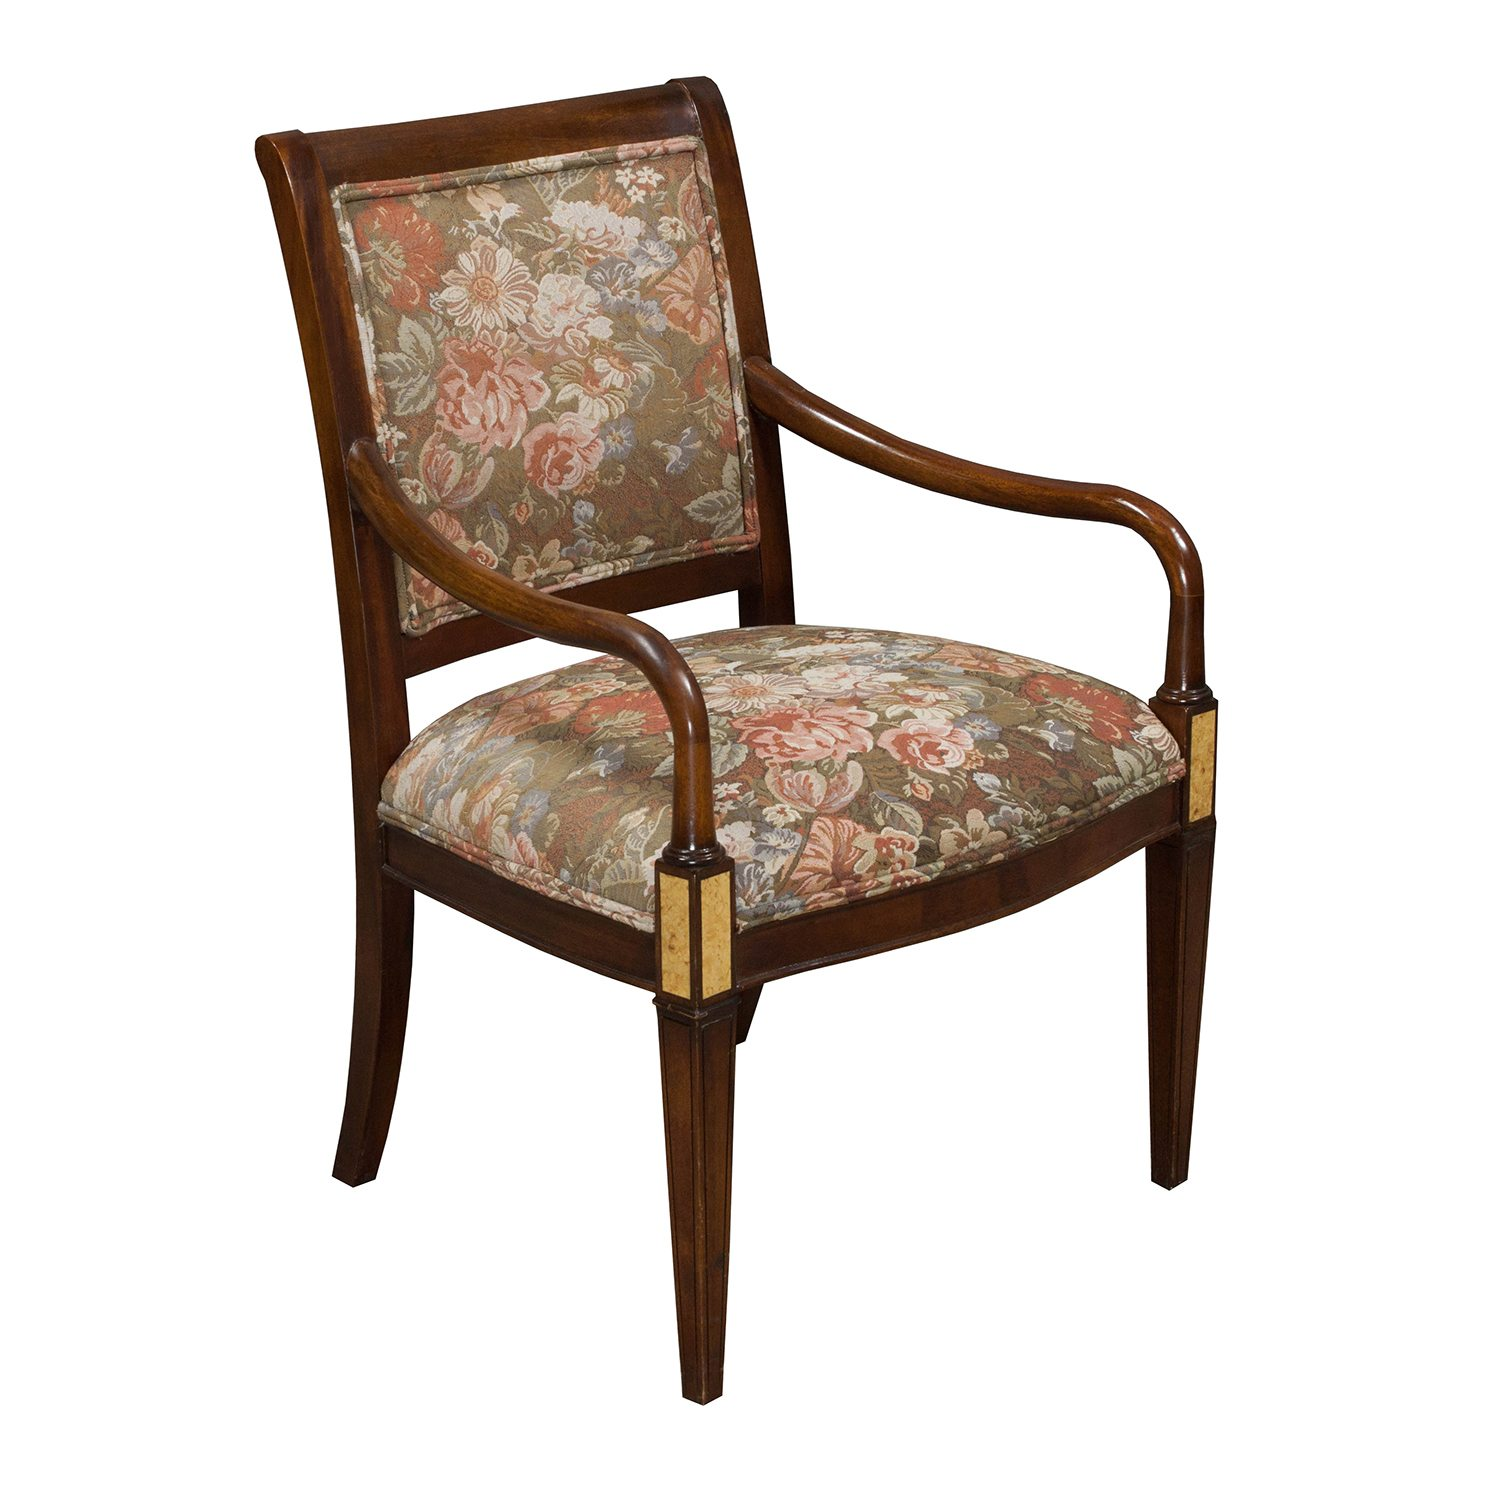 Floral Chairs Traditional Wooden Side Chair Floral National Office